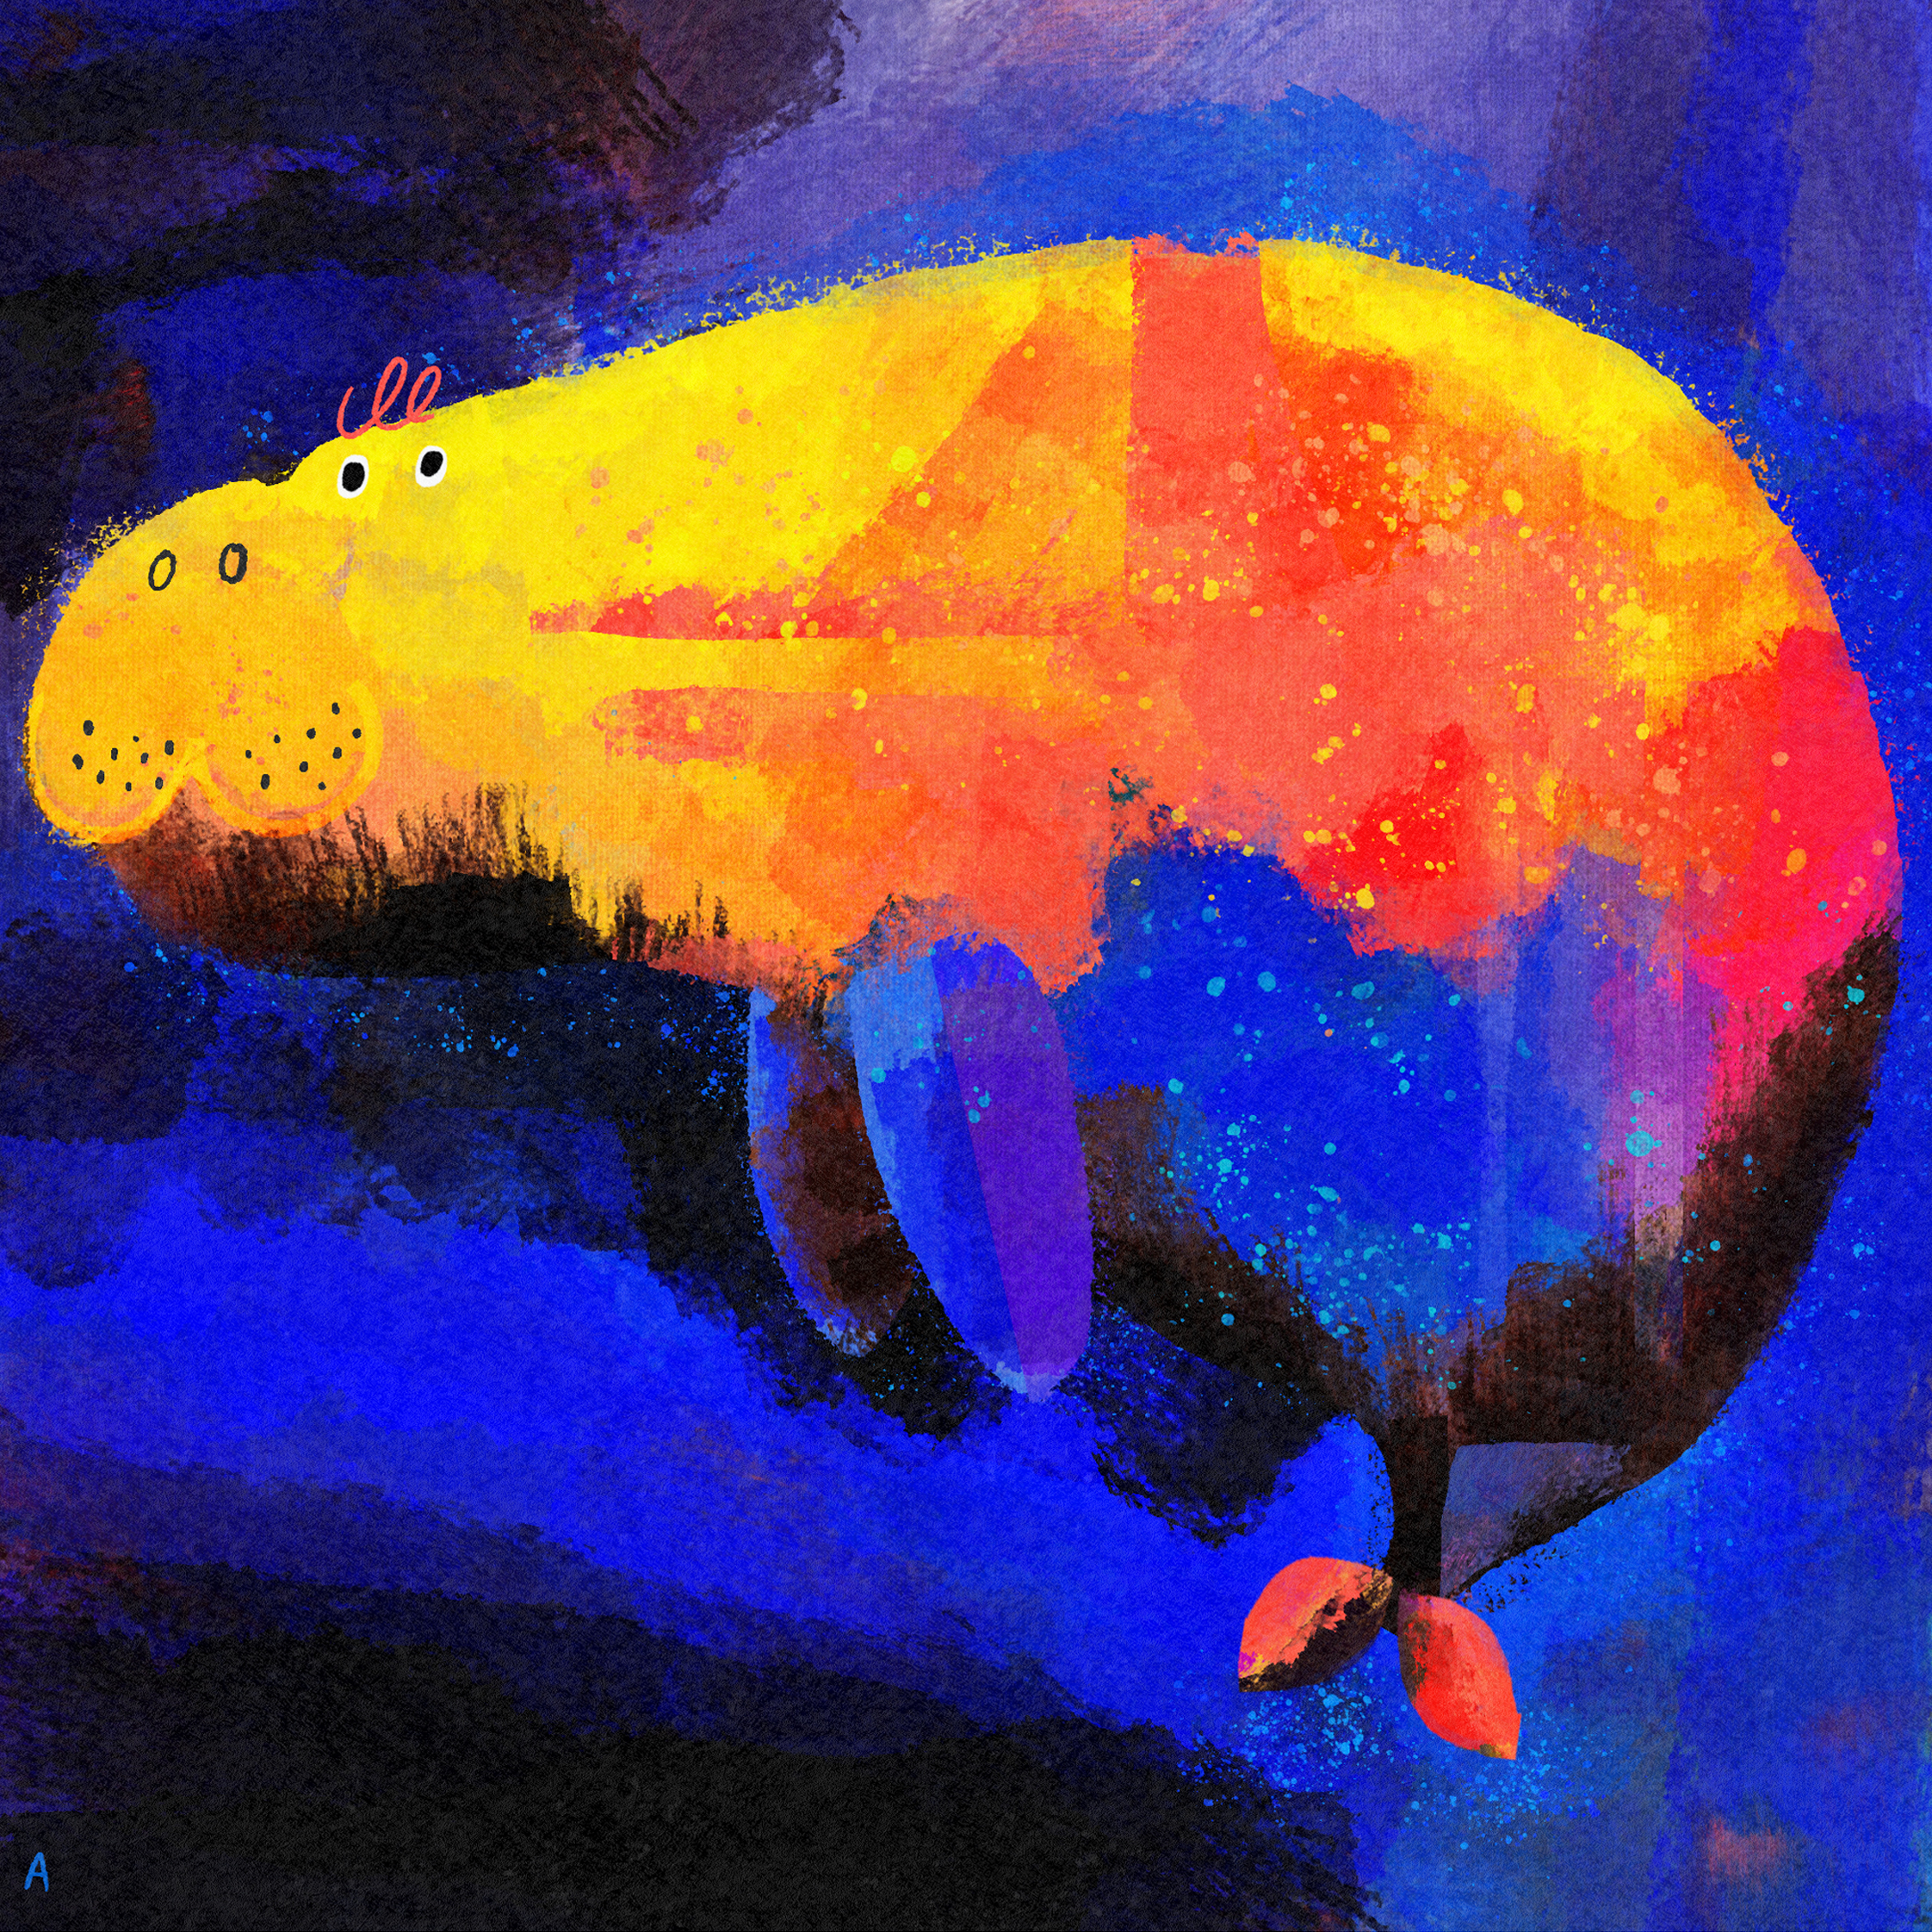 Very colourful painted dugong on a blue background. The red, orange and yellow paint is in broad strokes, with the dugong's cat or dog shaped muzzle drawn in detail with pen, including eyes, nostrils and little whisker-dots.